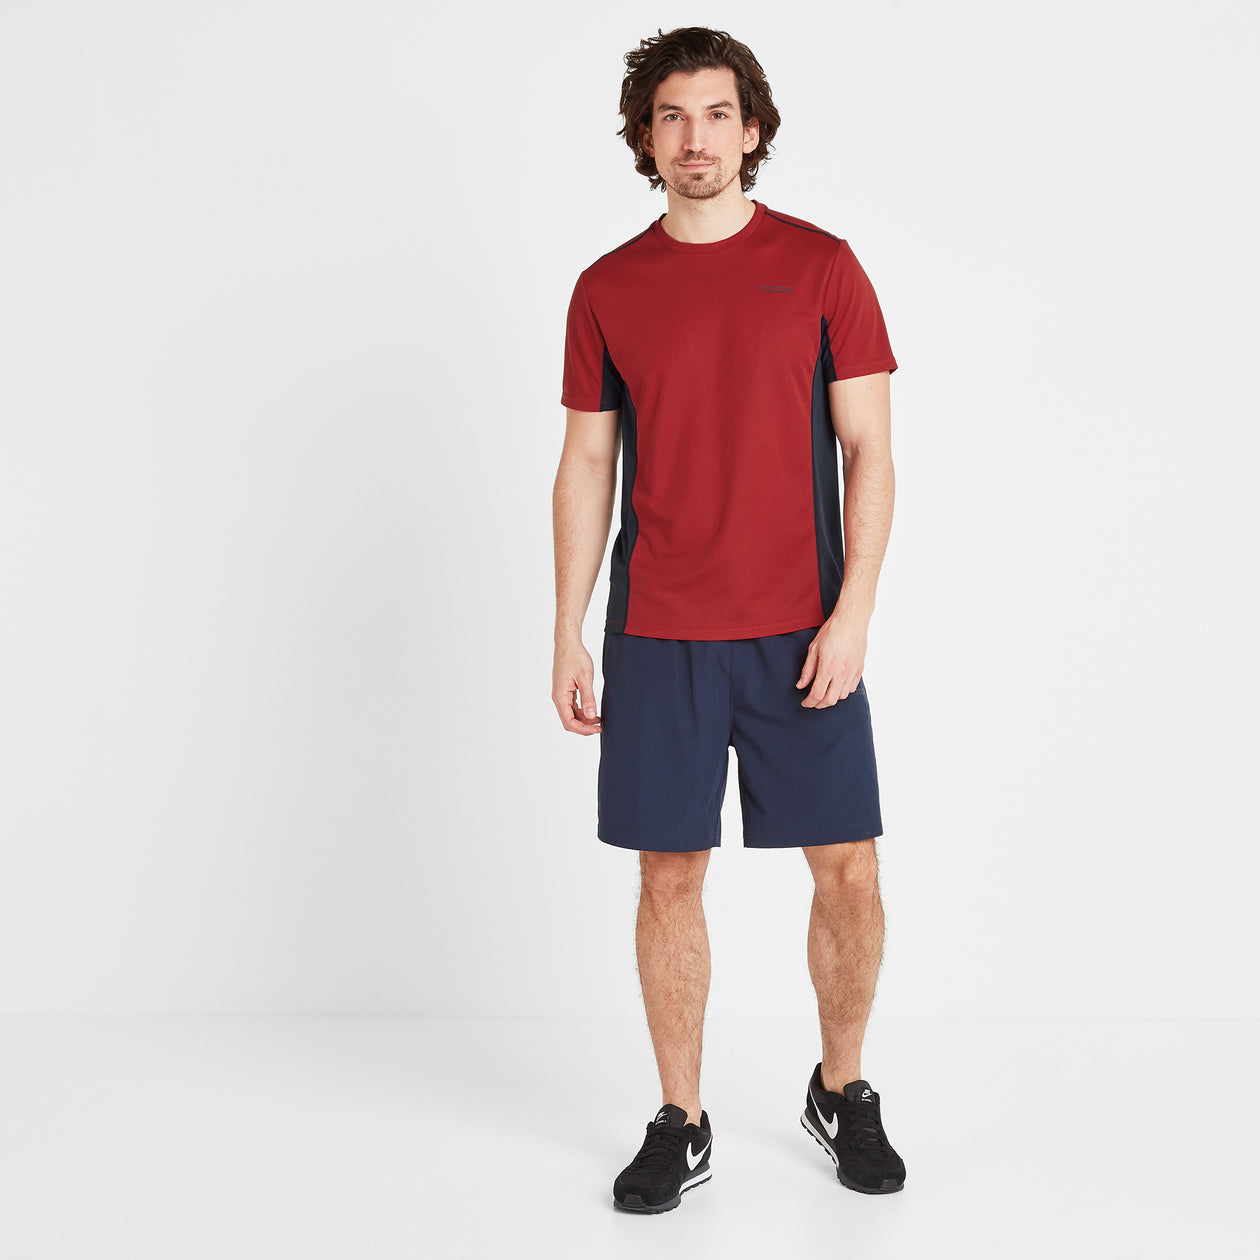 Blackwell Mens Tech T-Shirt - Chilli Red image 4